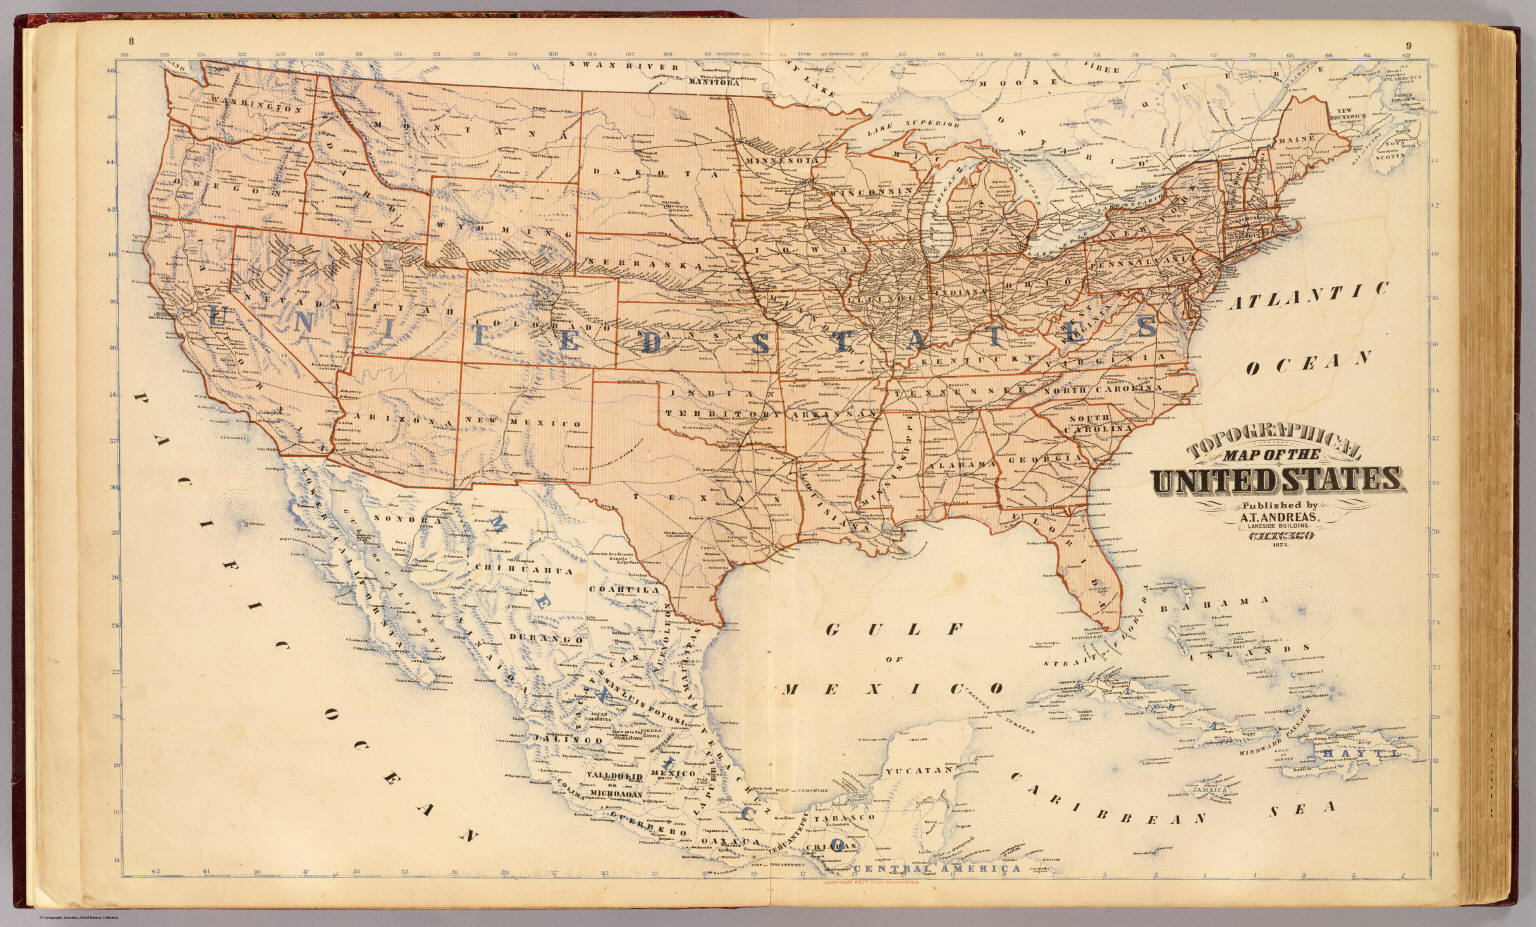 Topographical map of the United States David Rumsey Historical